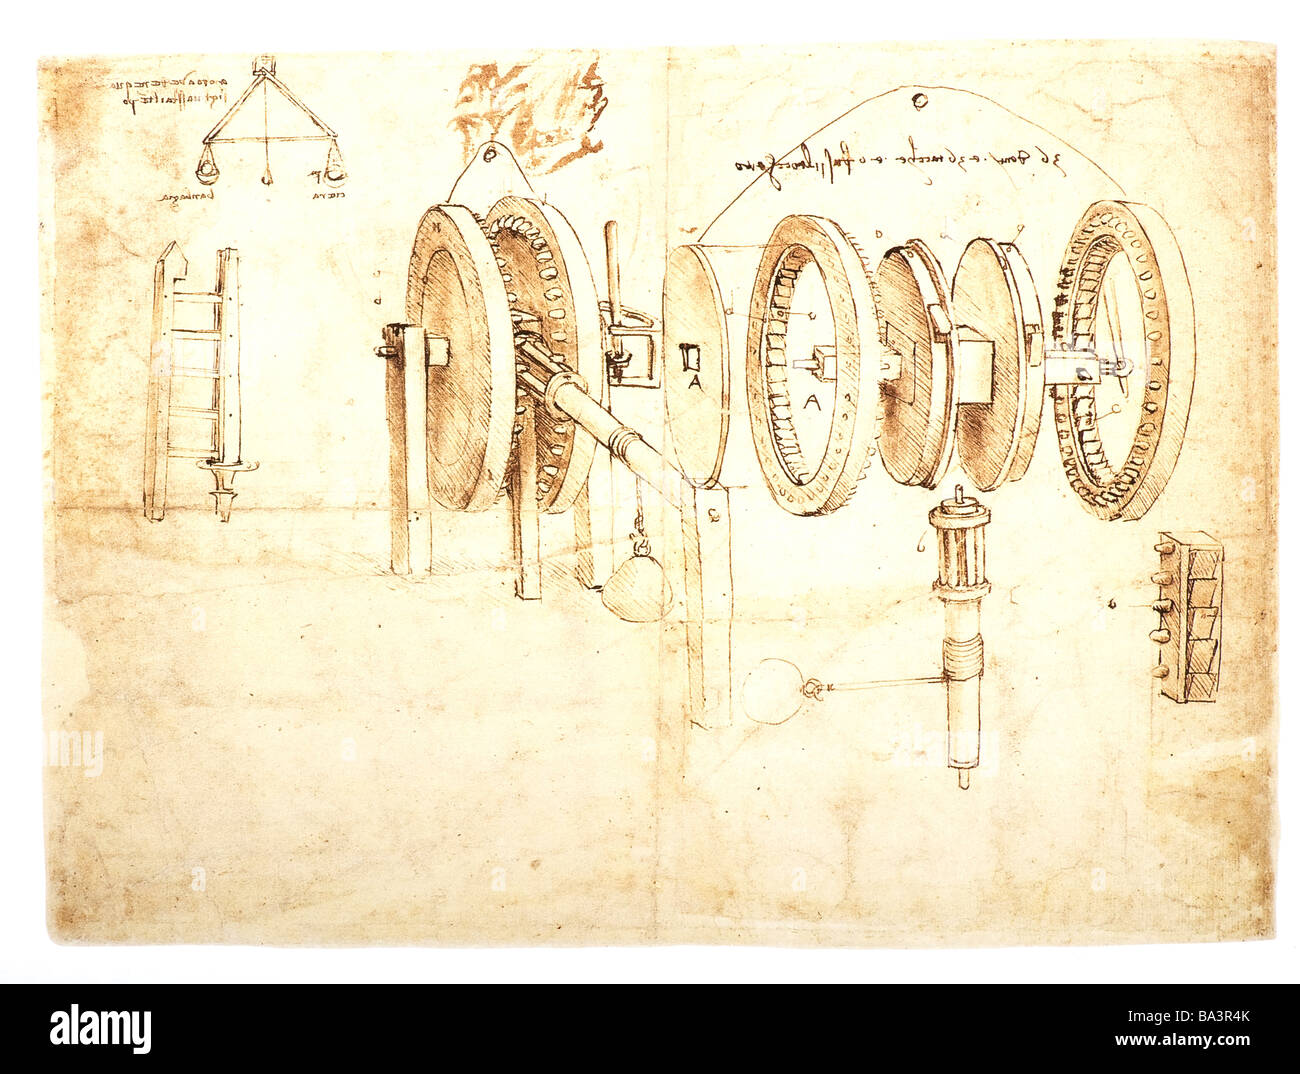 Studies of Toothed Gears and for a Hygrometer by Leonardo da Vinci 1485 pen and ink - Stock Image